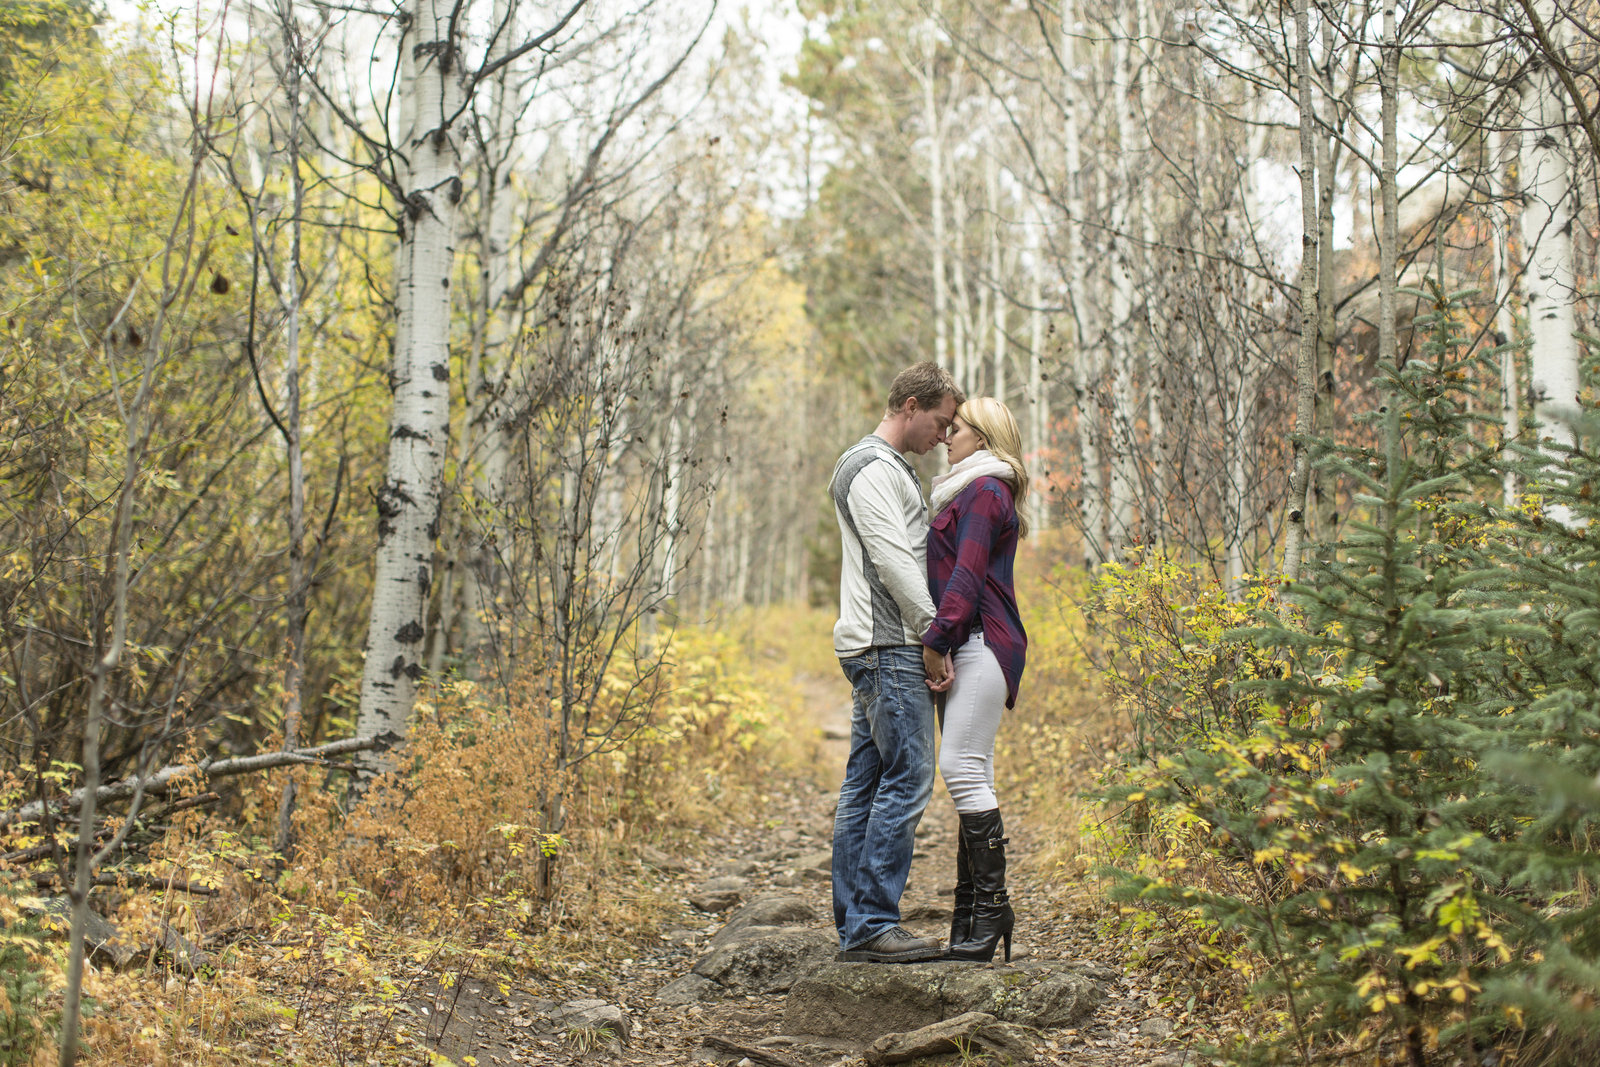 Jessi-And-Zach-Photography-Colorado-Wedding-Photographer-Nevada-Wedding-Photographer-Nevada-Engagement-Photographer_26